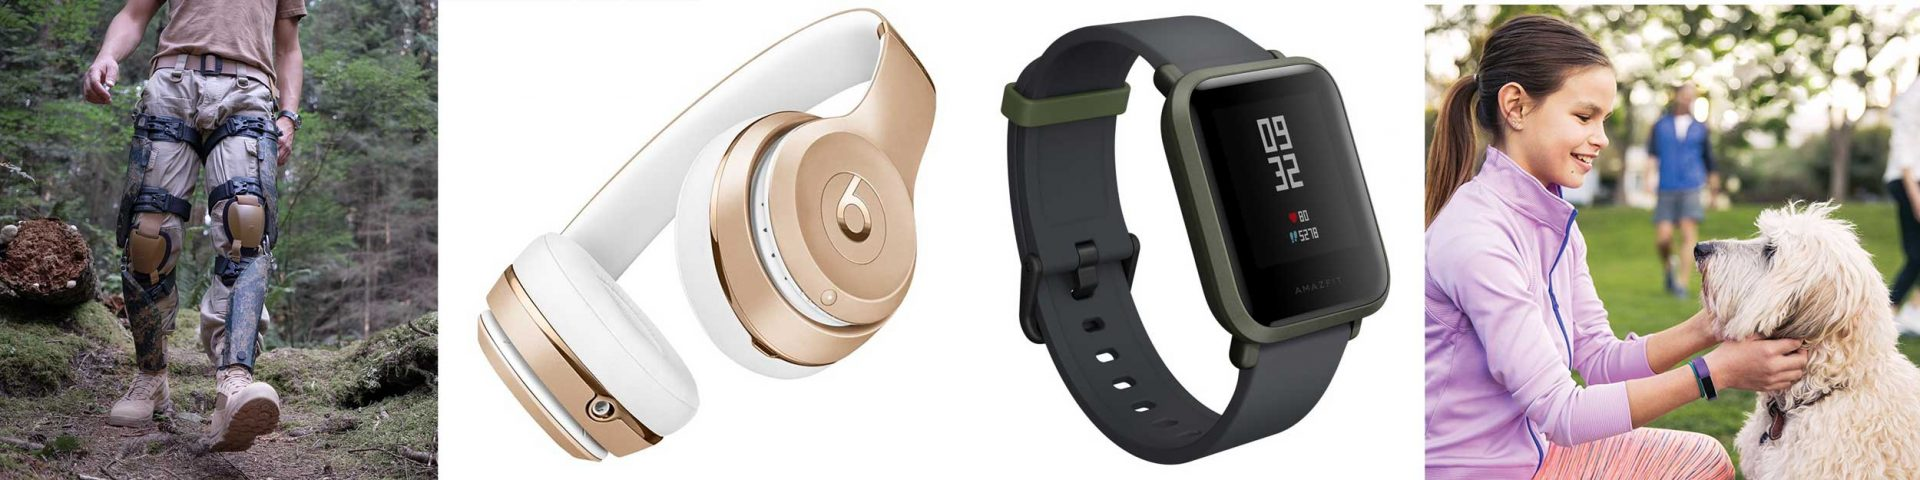 Bionic Power; Beats Solo 3; Amazfit Bip; Fitbit Ace